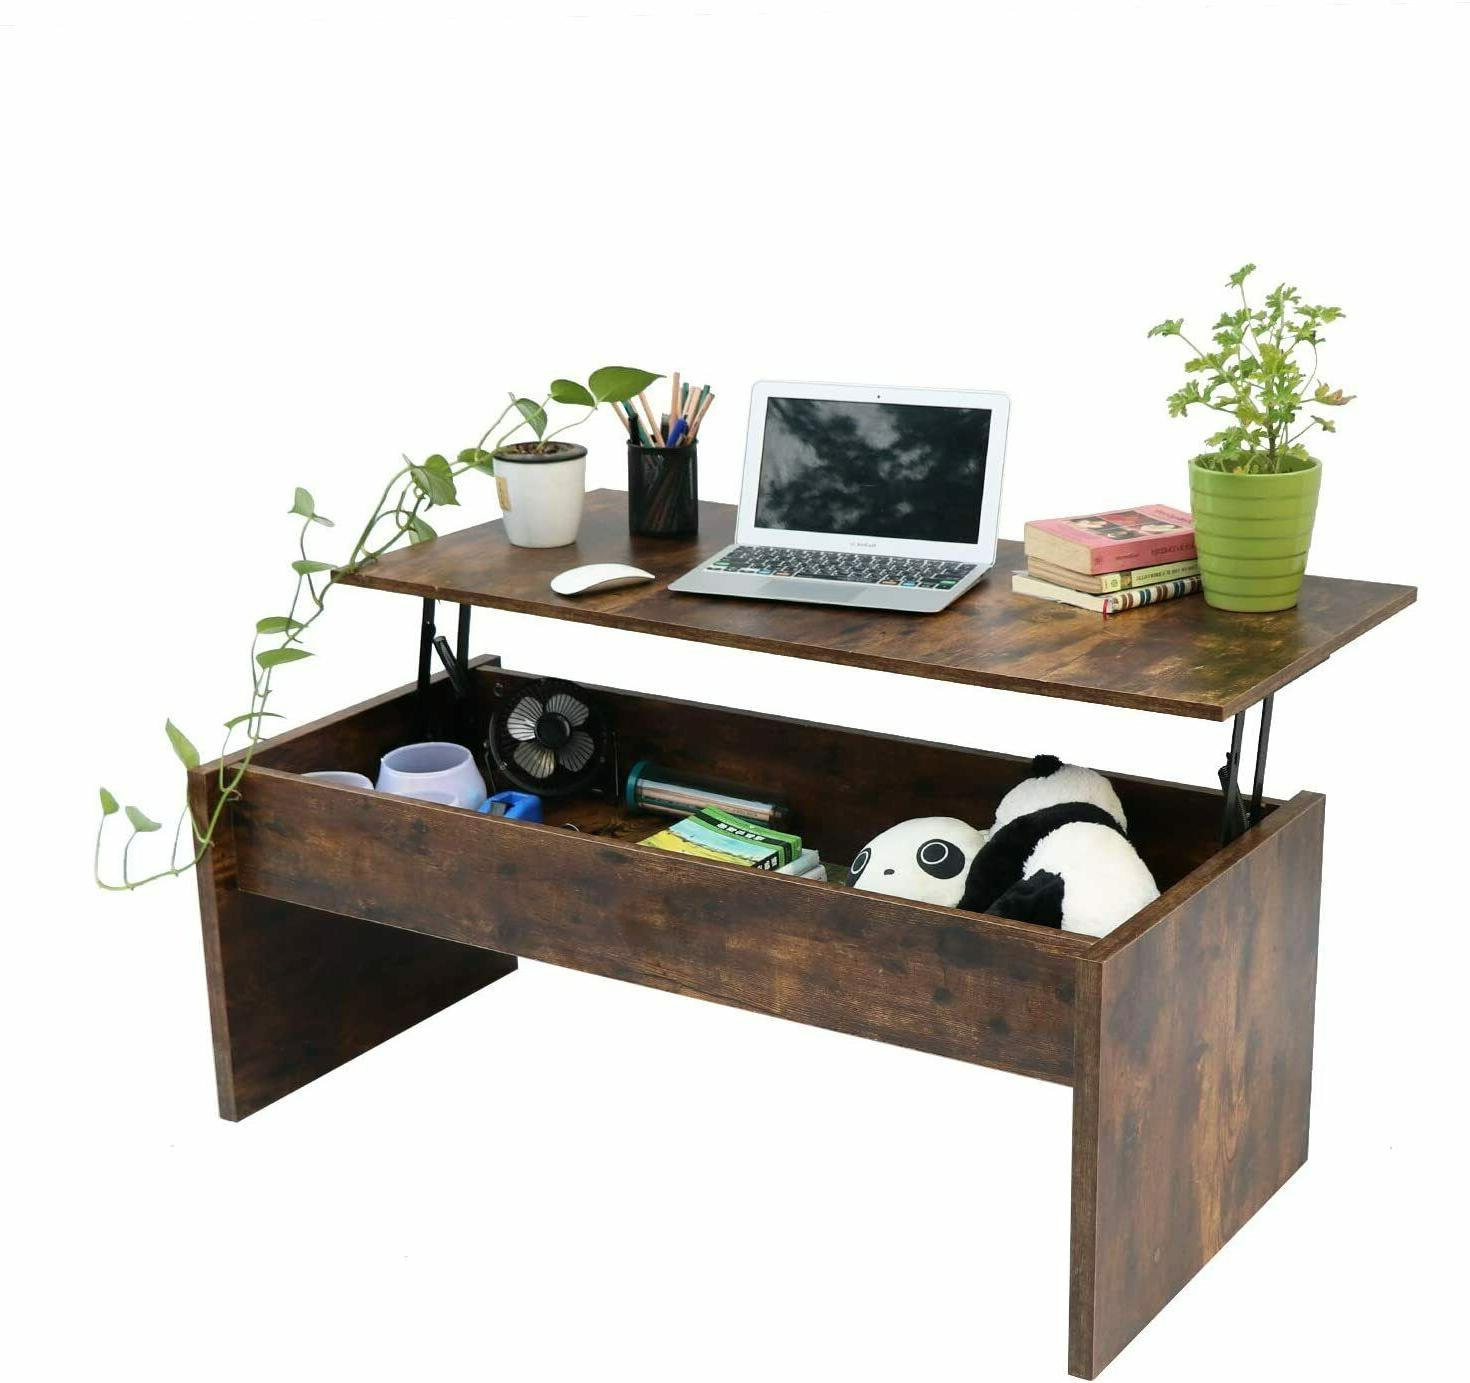 top lift coffee table w hidden compartment